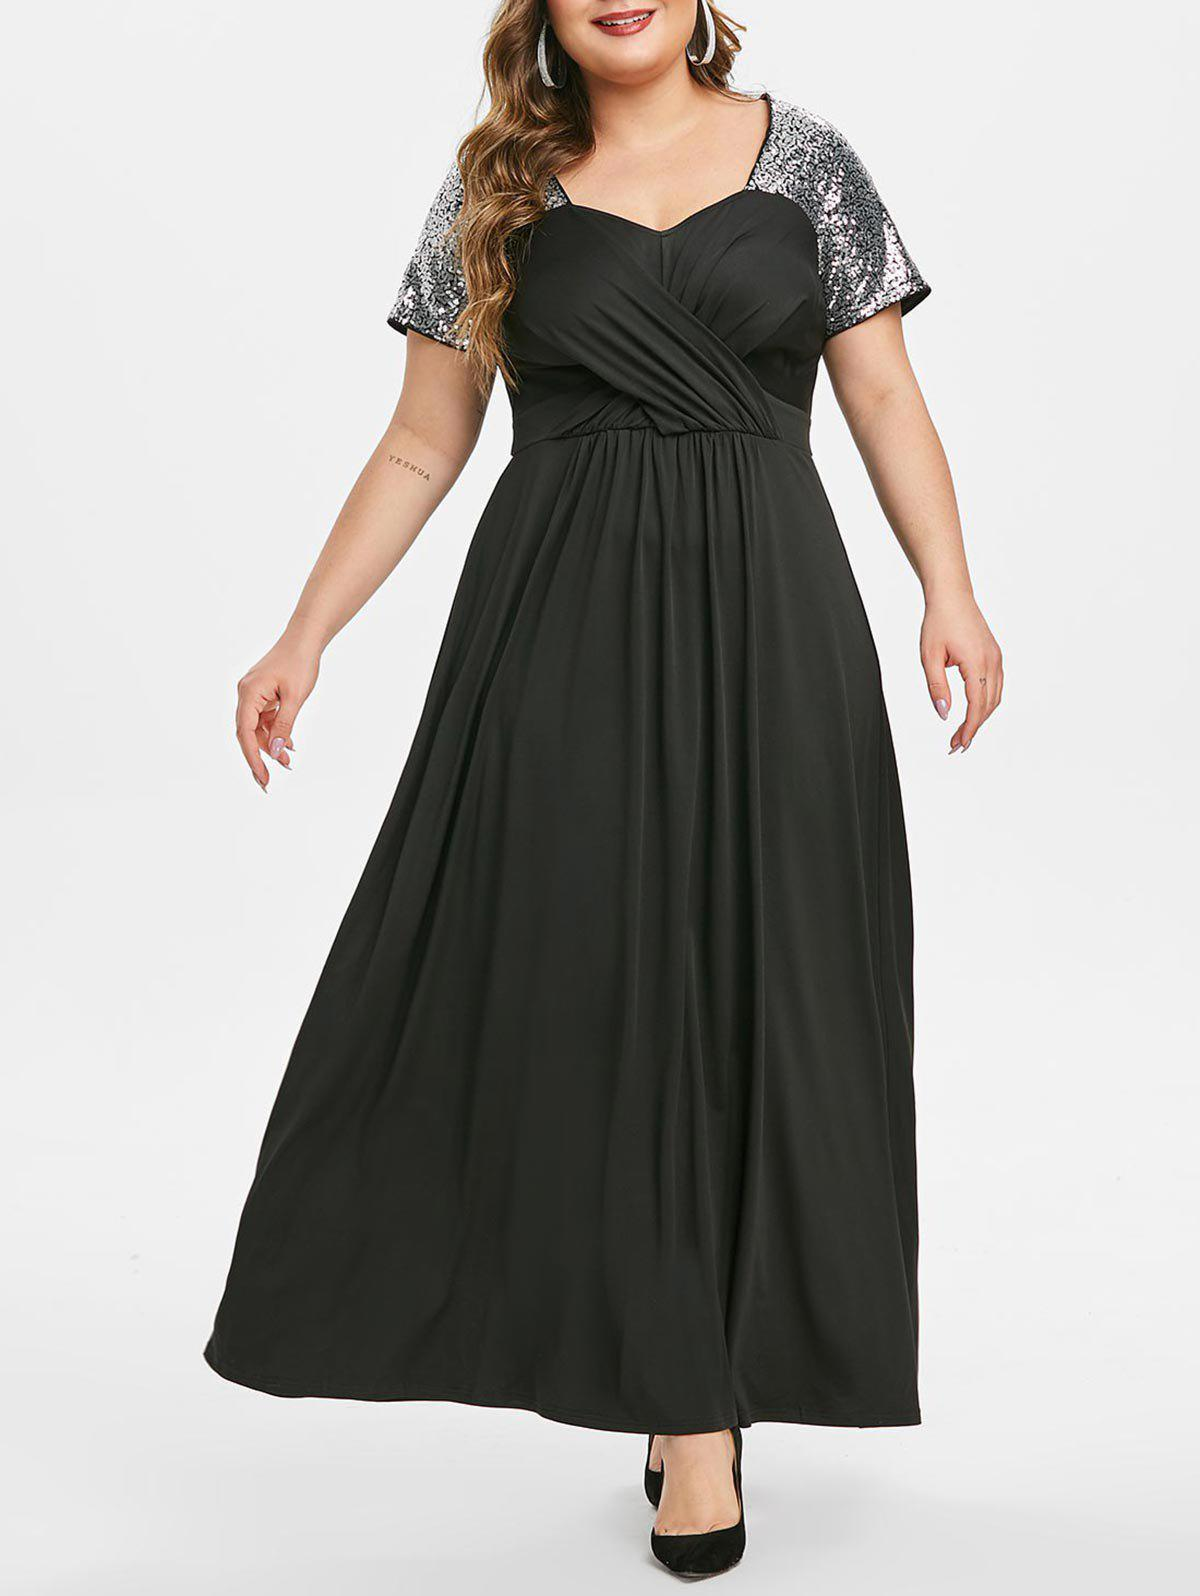 Plus Size Sequin Crossover Maxi Party Dress - BLACK 3X